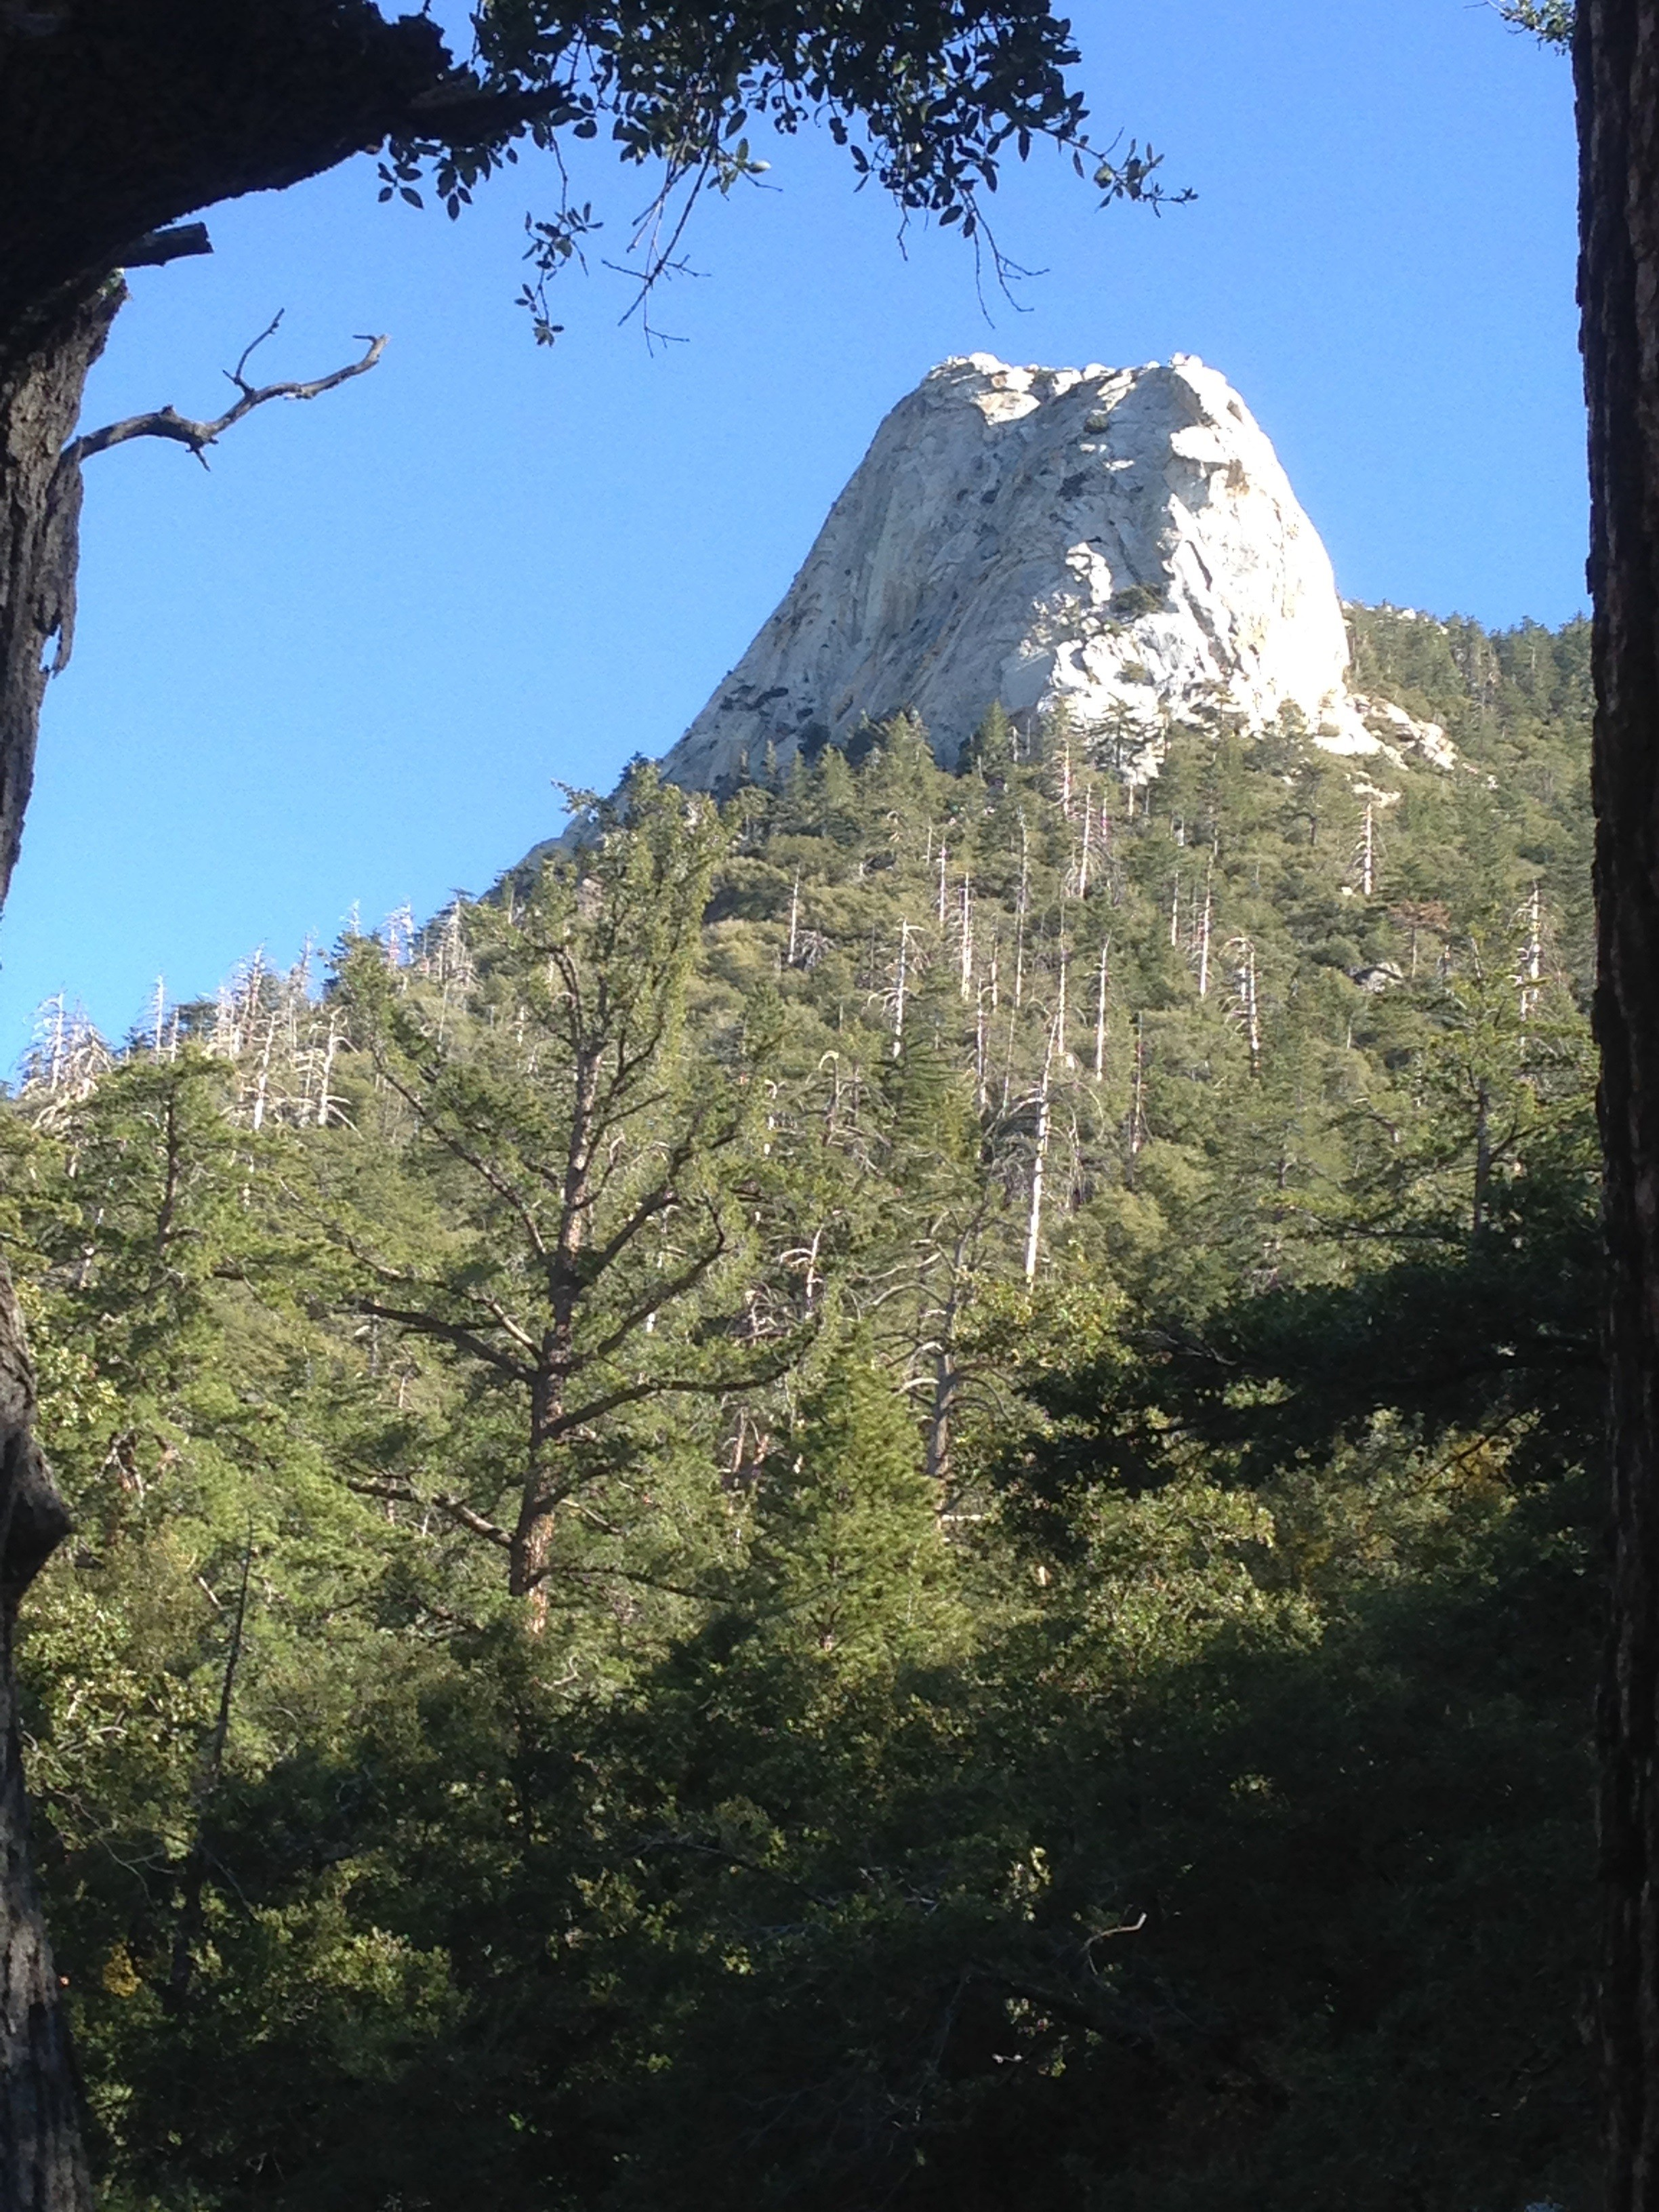 Lilly rock in Idyllwild, California photo  Martin Pierce Hardware  Los Angeles Ca  90016